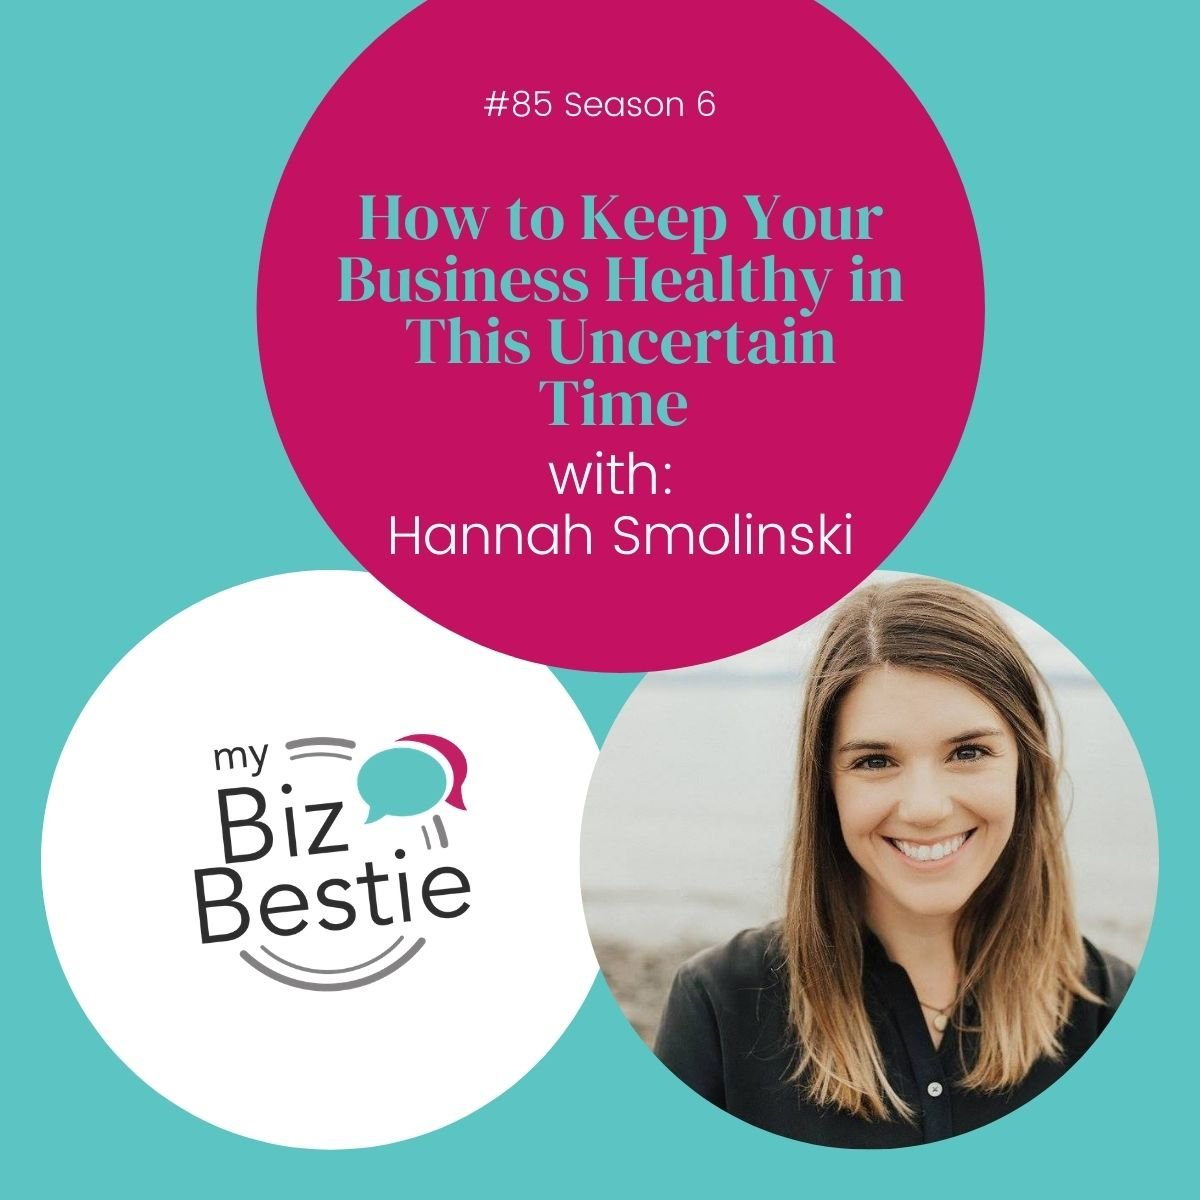 How To Keep Your Business Healthy In This Uncertain Time With Hannah Smolinski